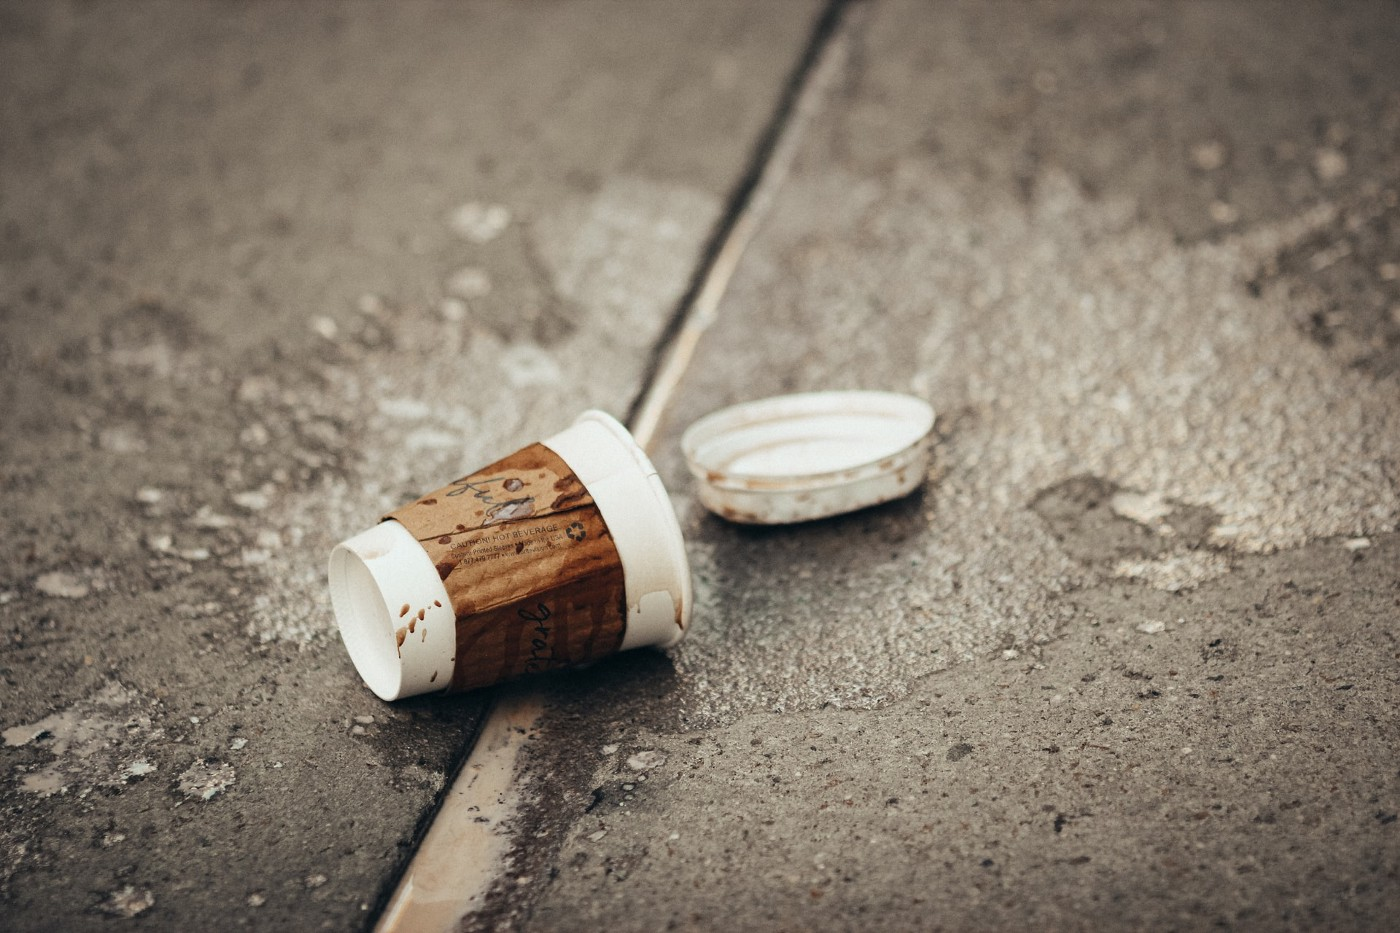 A tipped over coffee cup with the lid popped off on a sidewalk